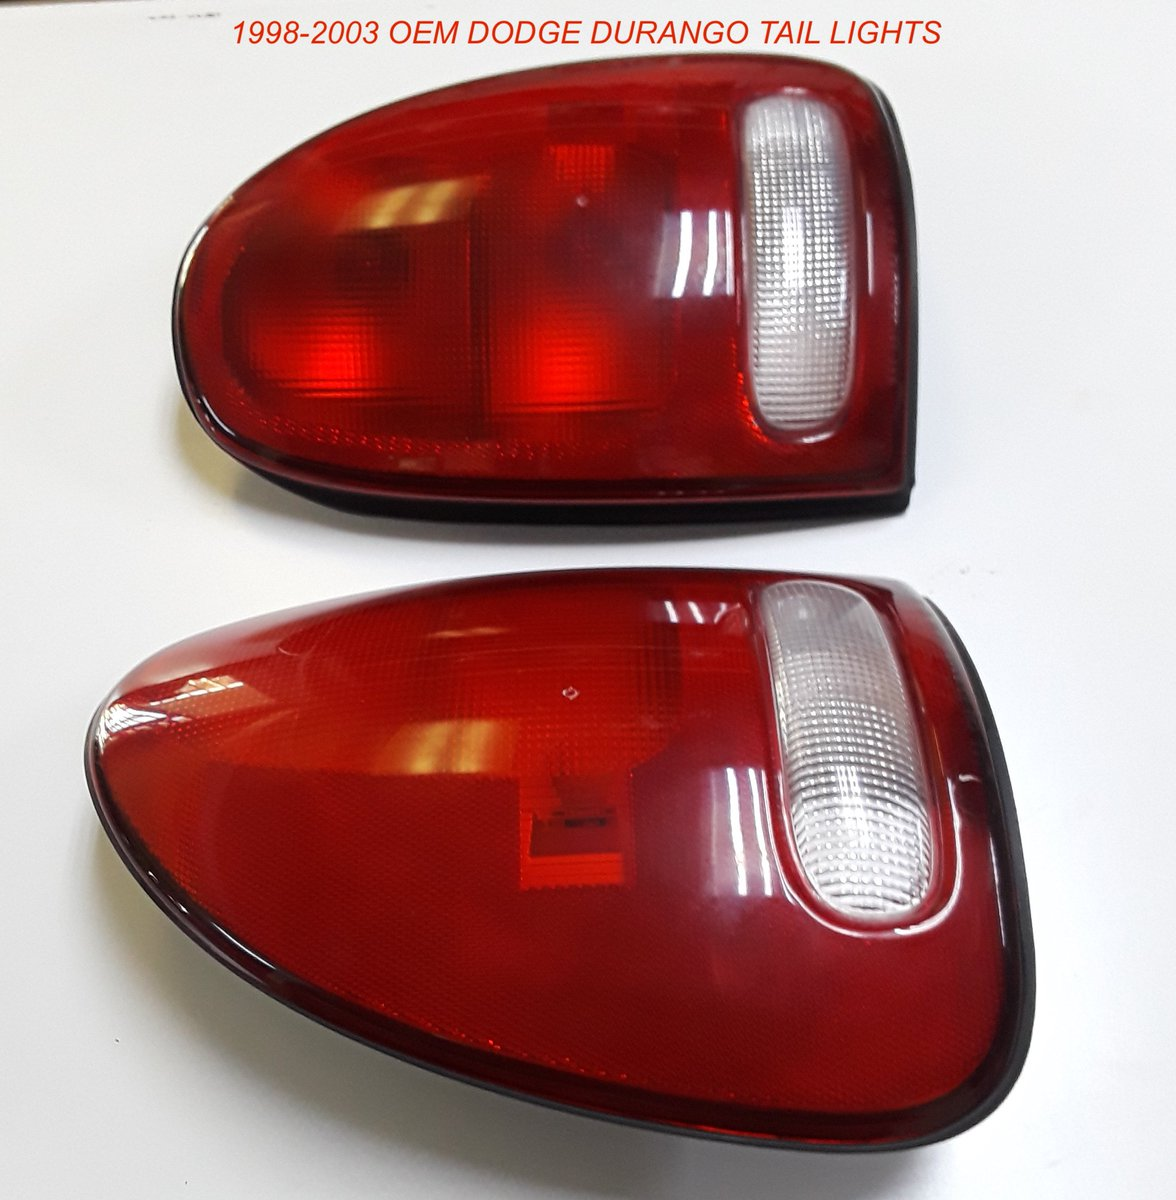 hight resolution of 1998 2003 dodge durango oem tail lights 60 fits 98 03 durango oem used but in very good condition very slight scuffs on them and no cracks or breaks at